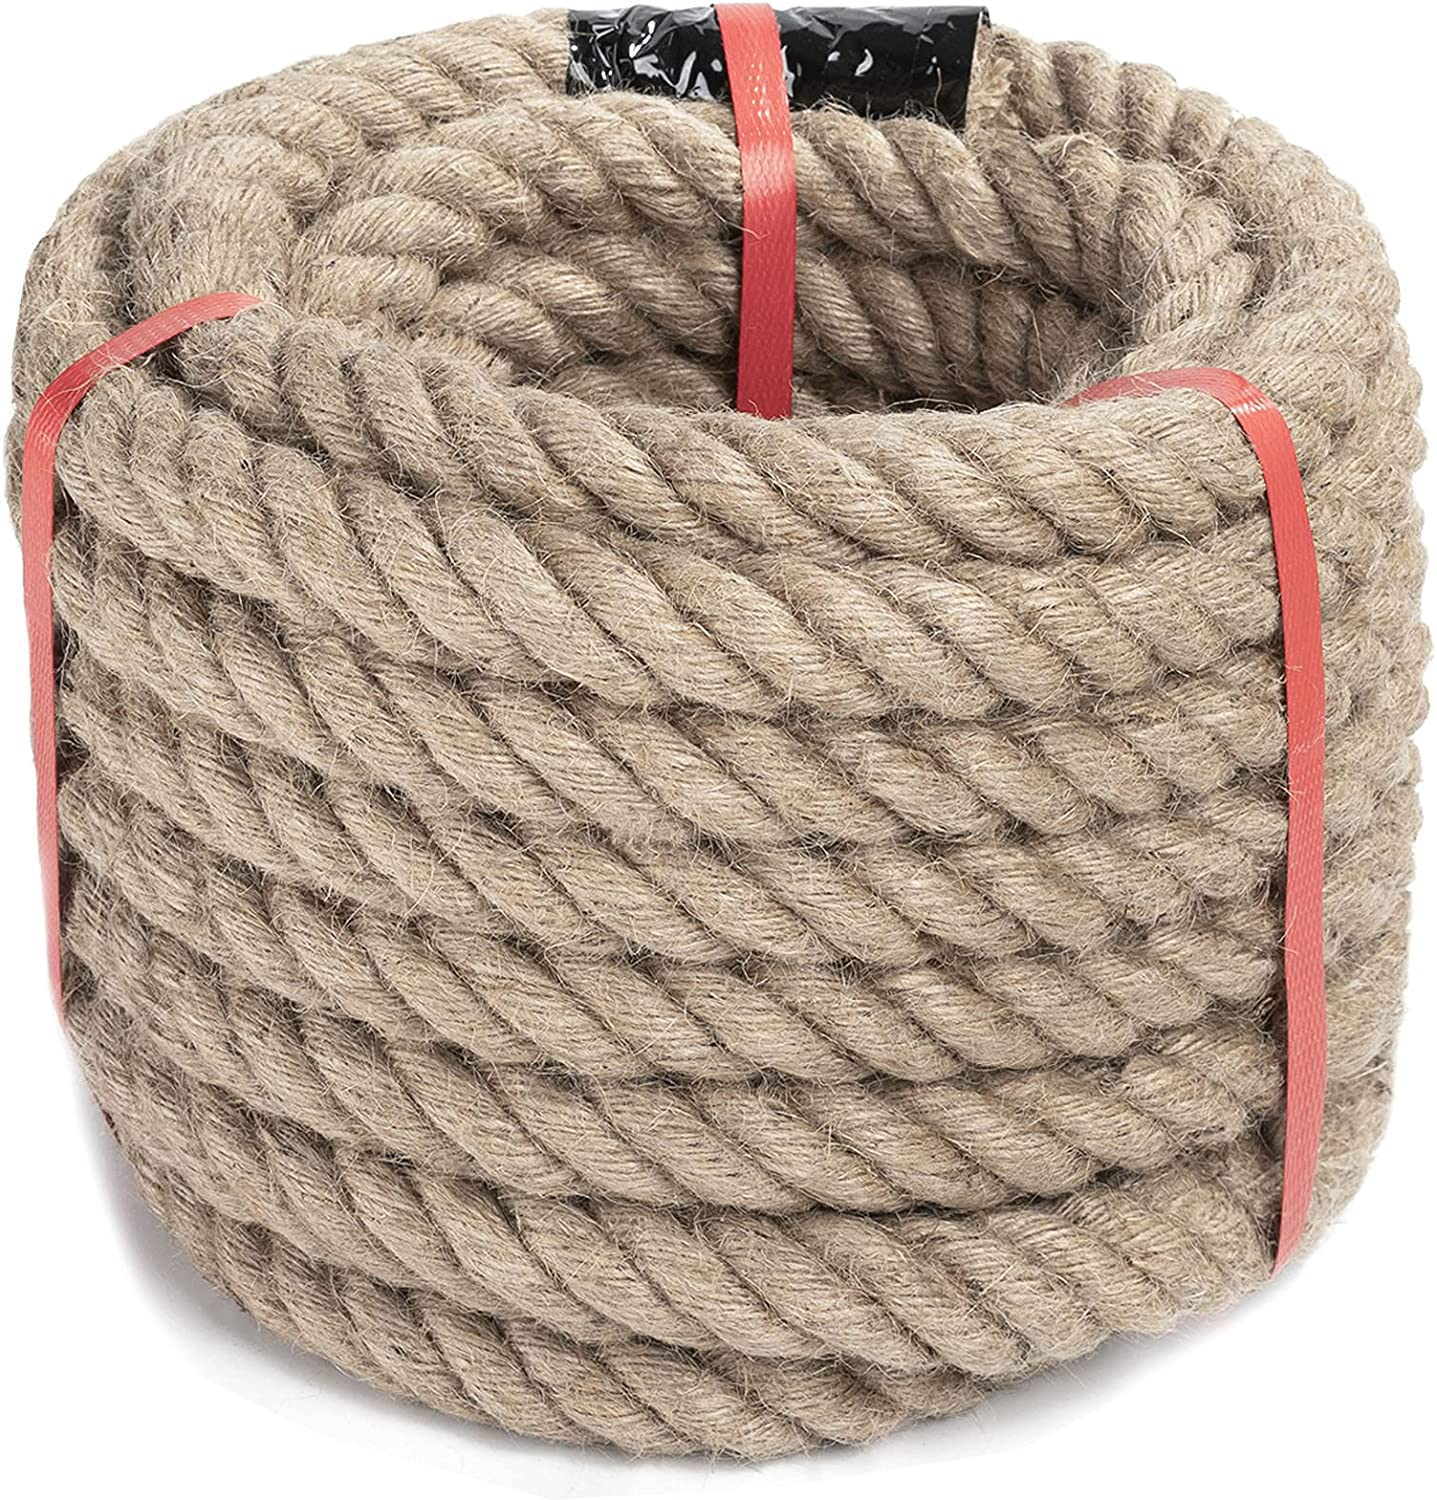 Zakous Jute Rope 1 Ranking TOP3 Inch High order 100 Hemp for Feet Twisted C Crafts